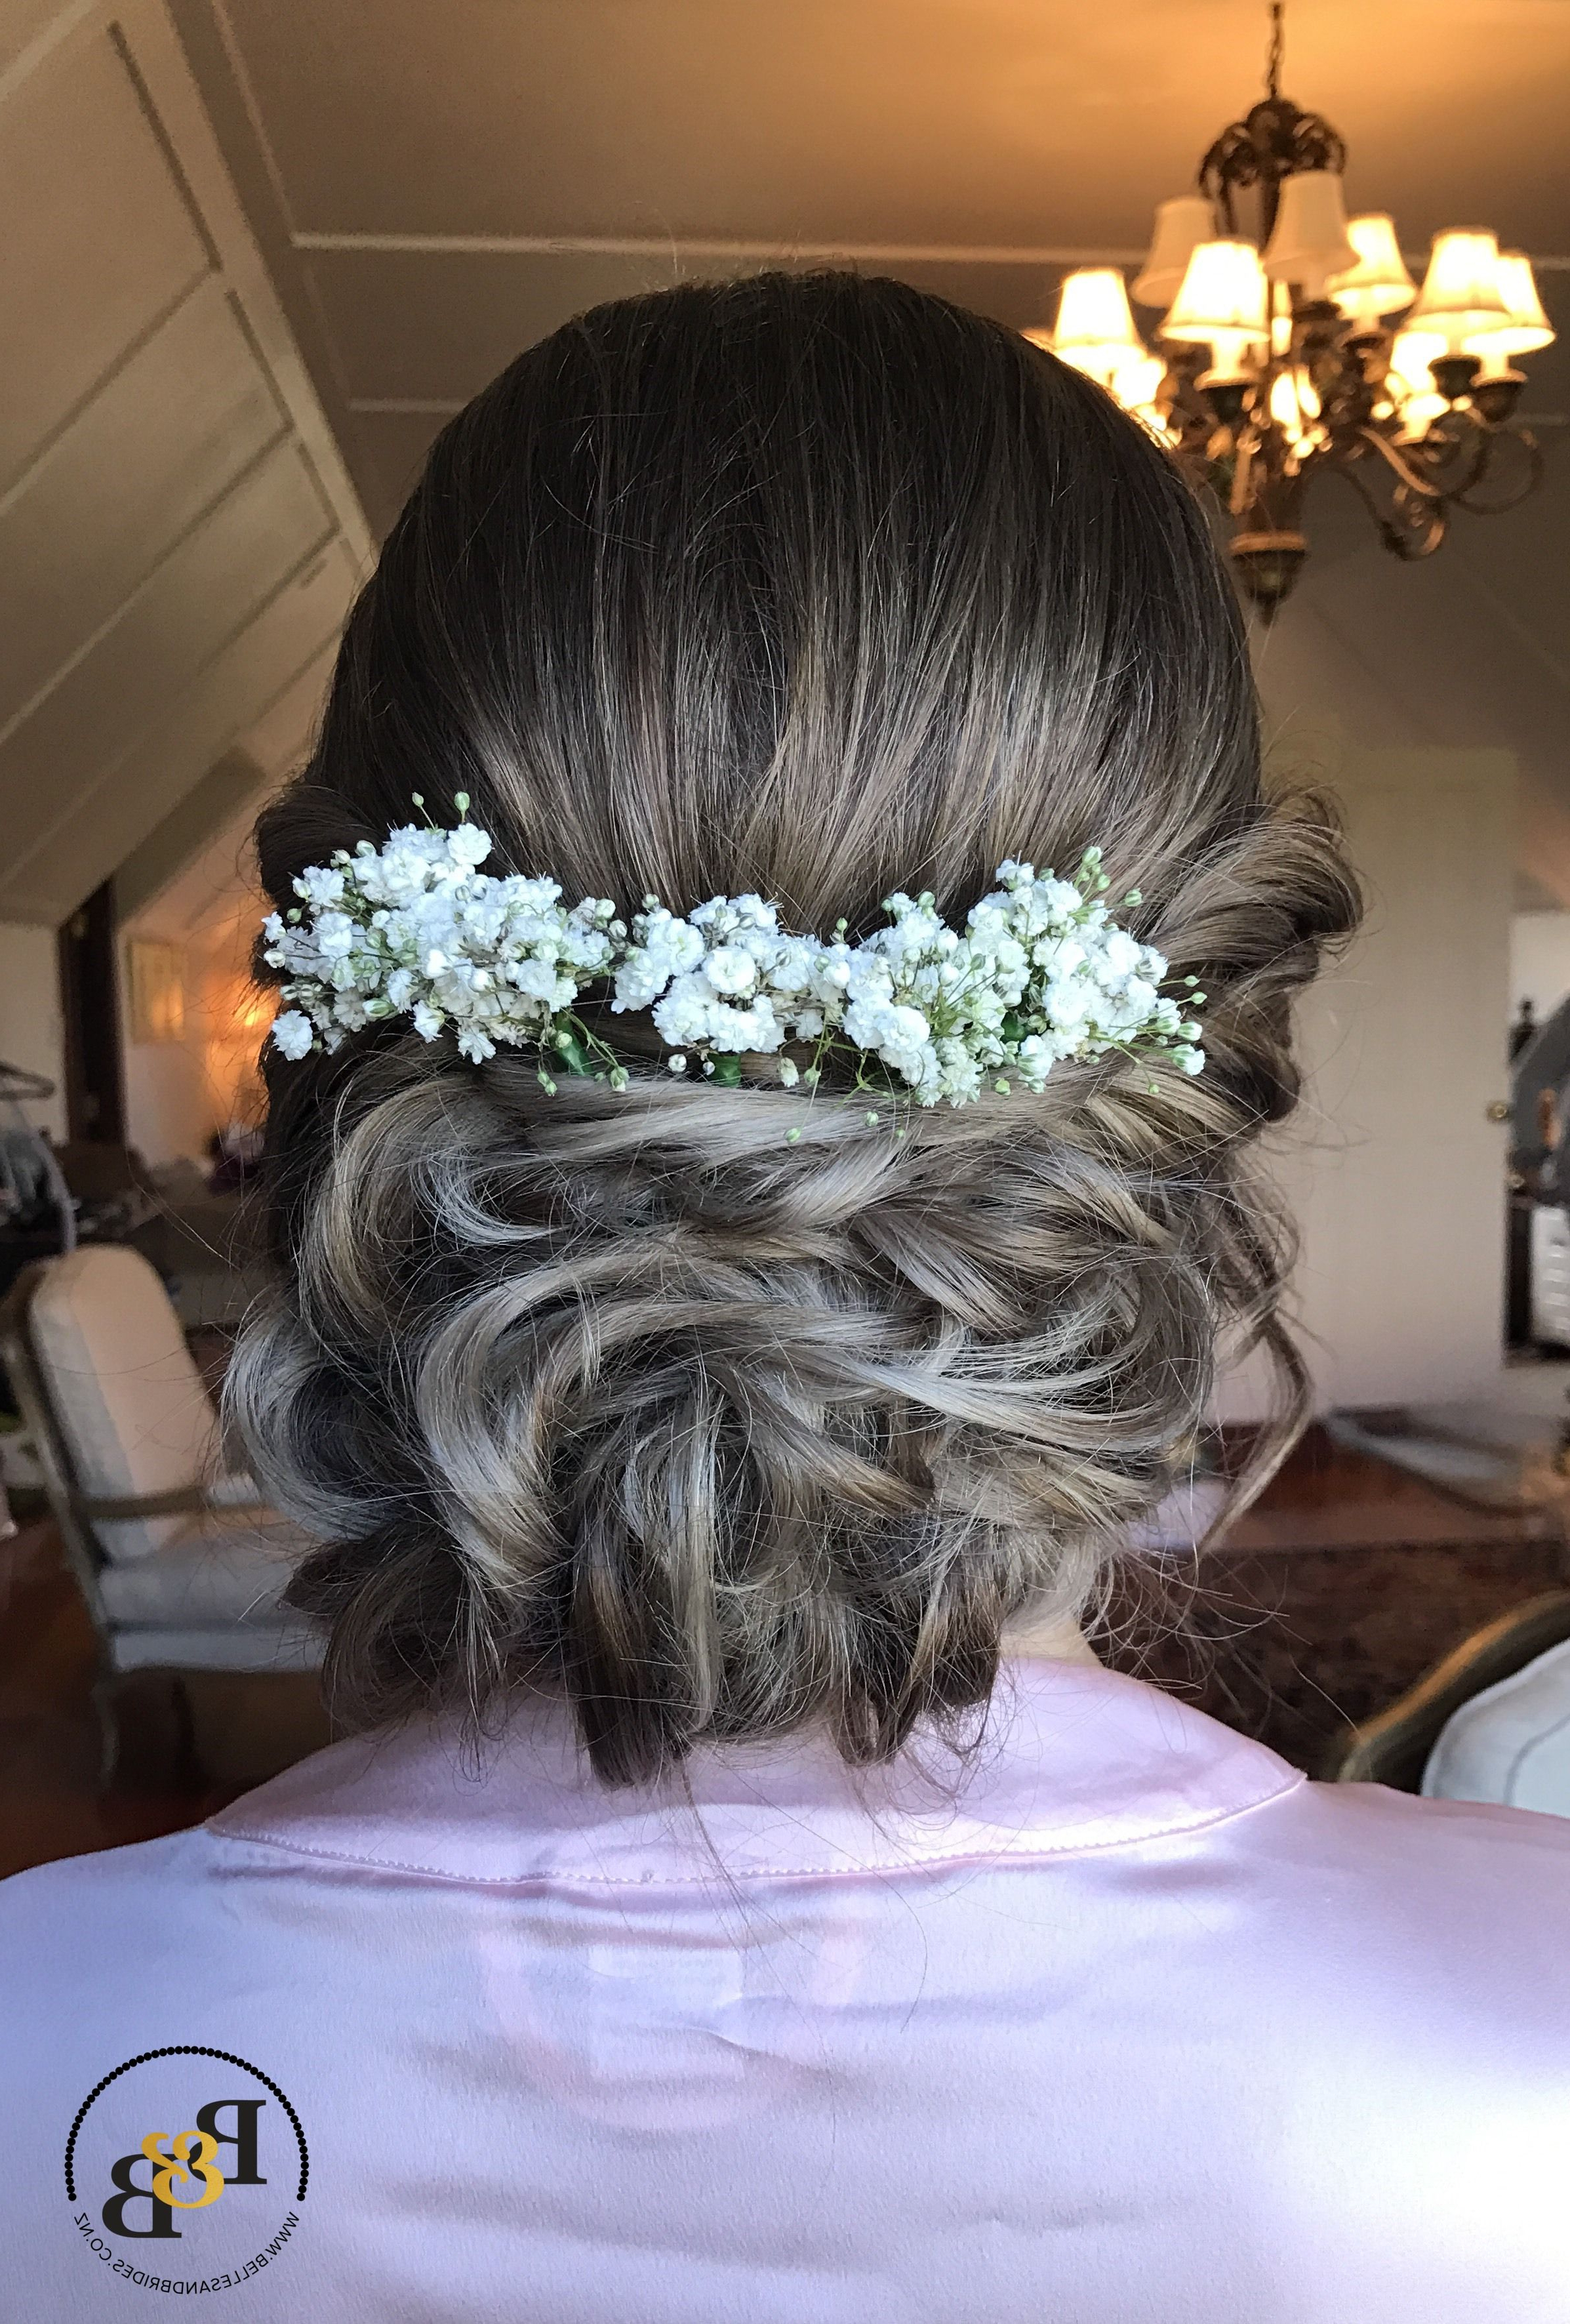 Beautiful Soft Wedding Updo With Baby's Breath / Bridal Updo With Inside Popular Woven Updos With Tendrils For Wedding (View 8 of 20)